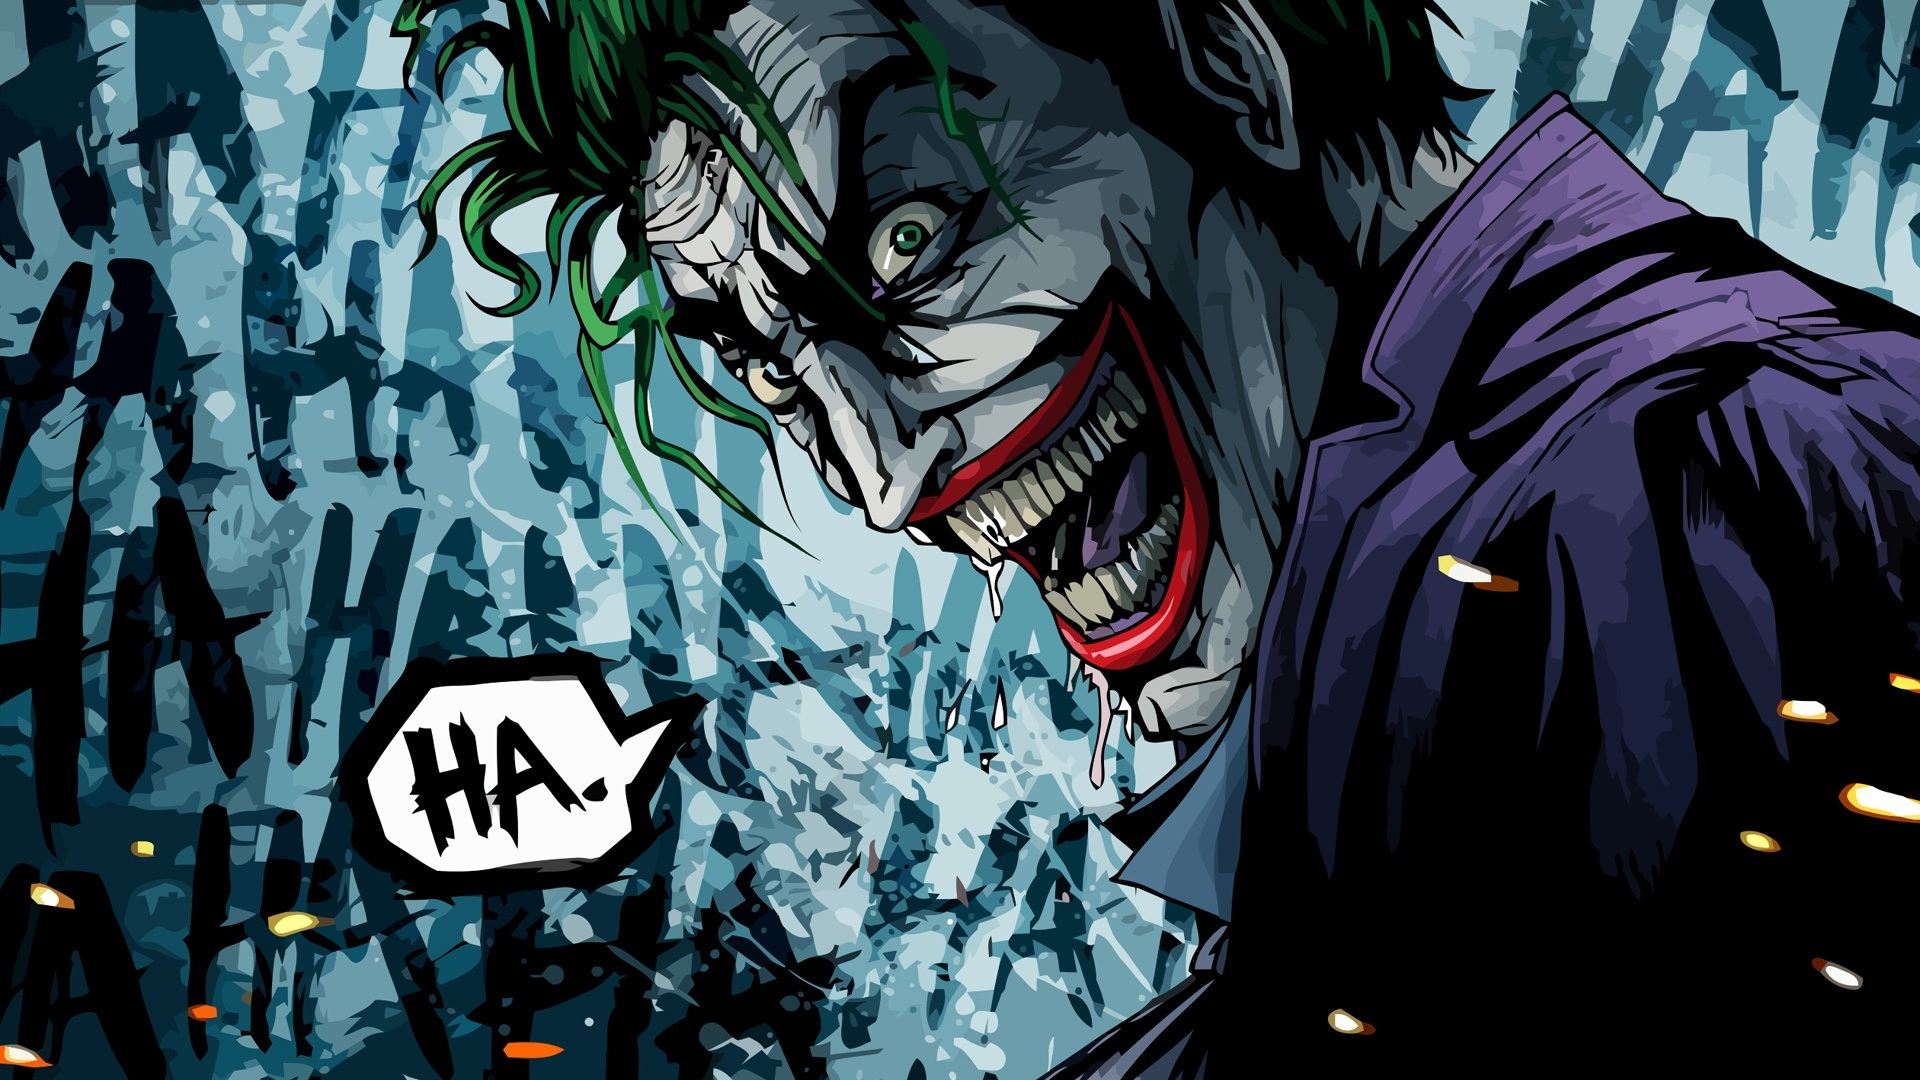 image - the joker the killing joke version hd wallpaper wallpapers